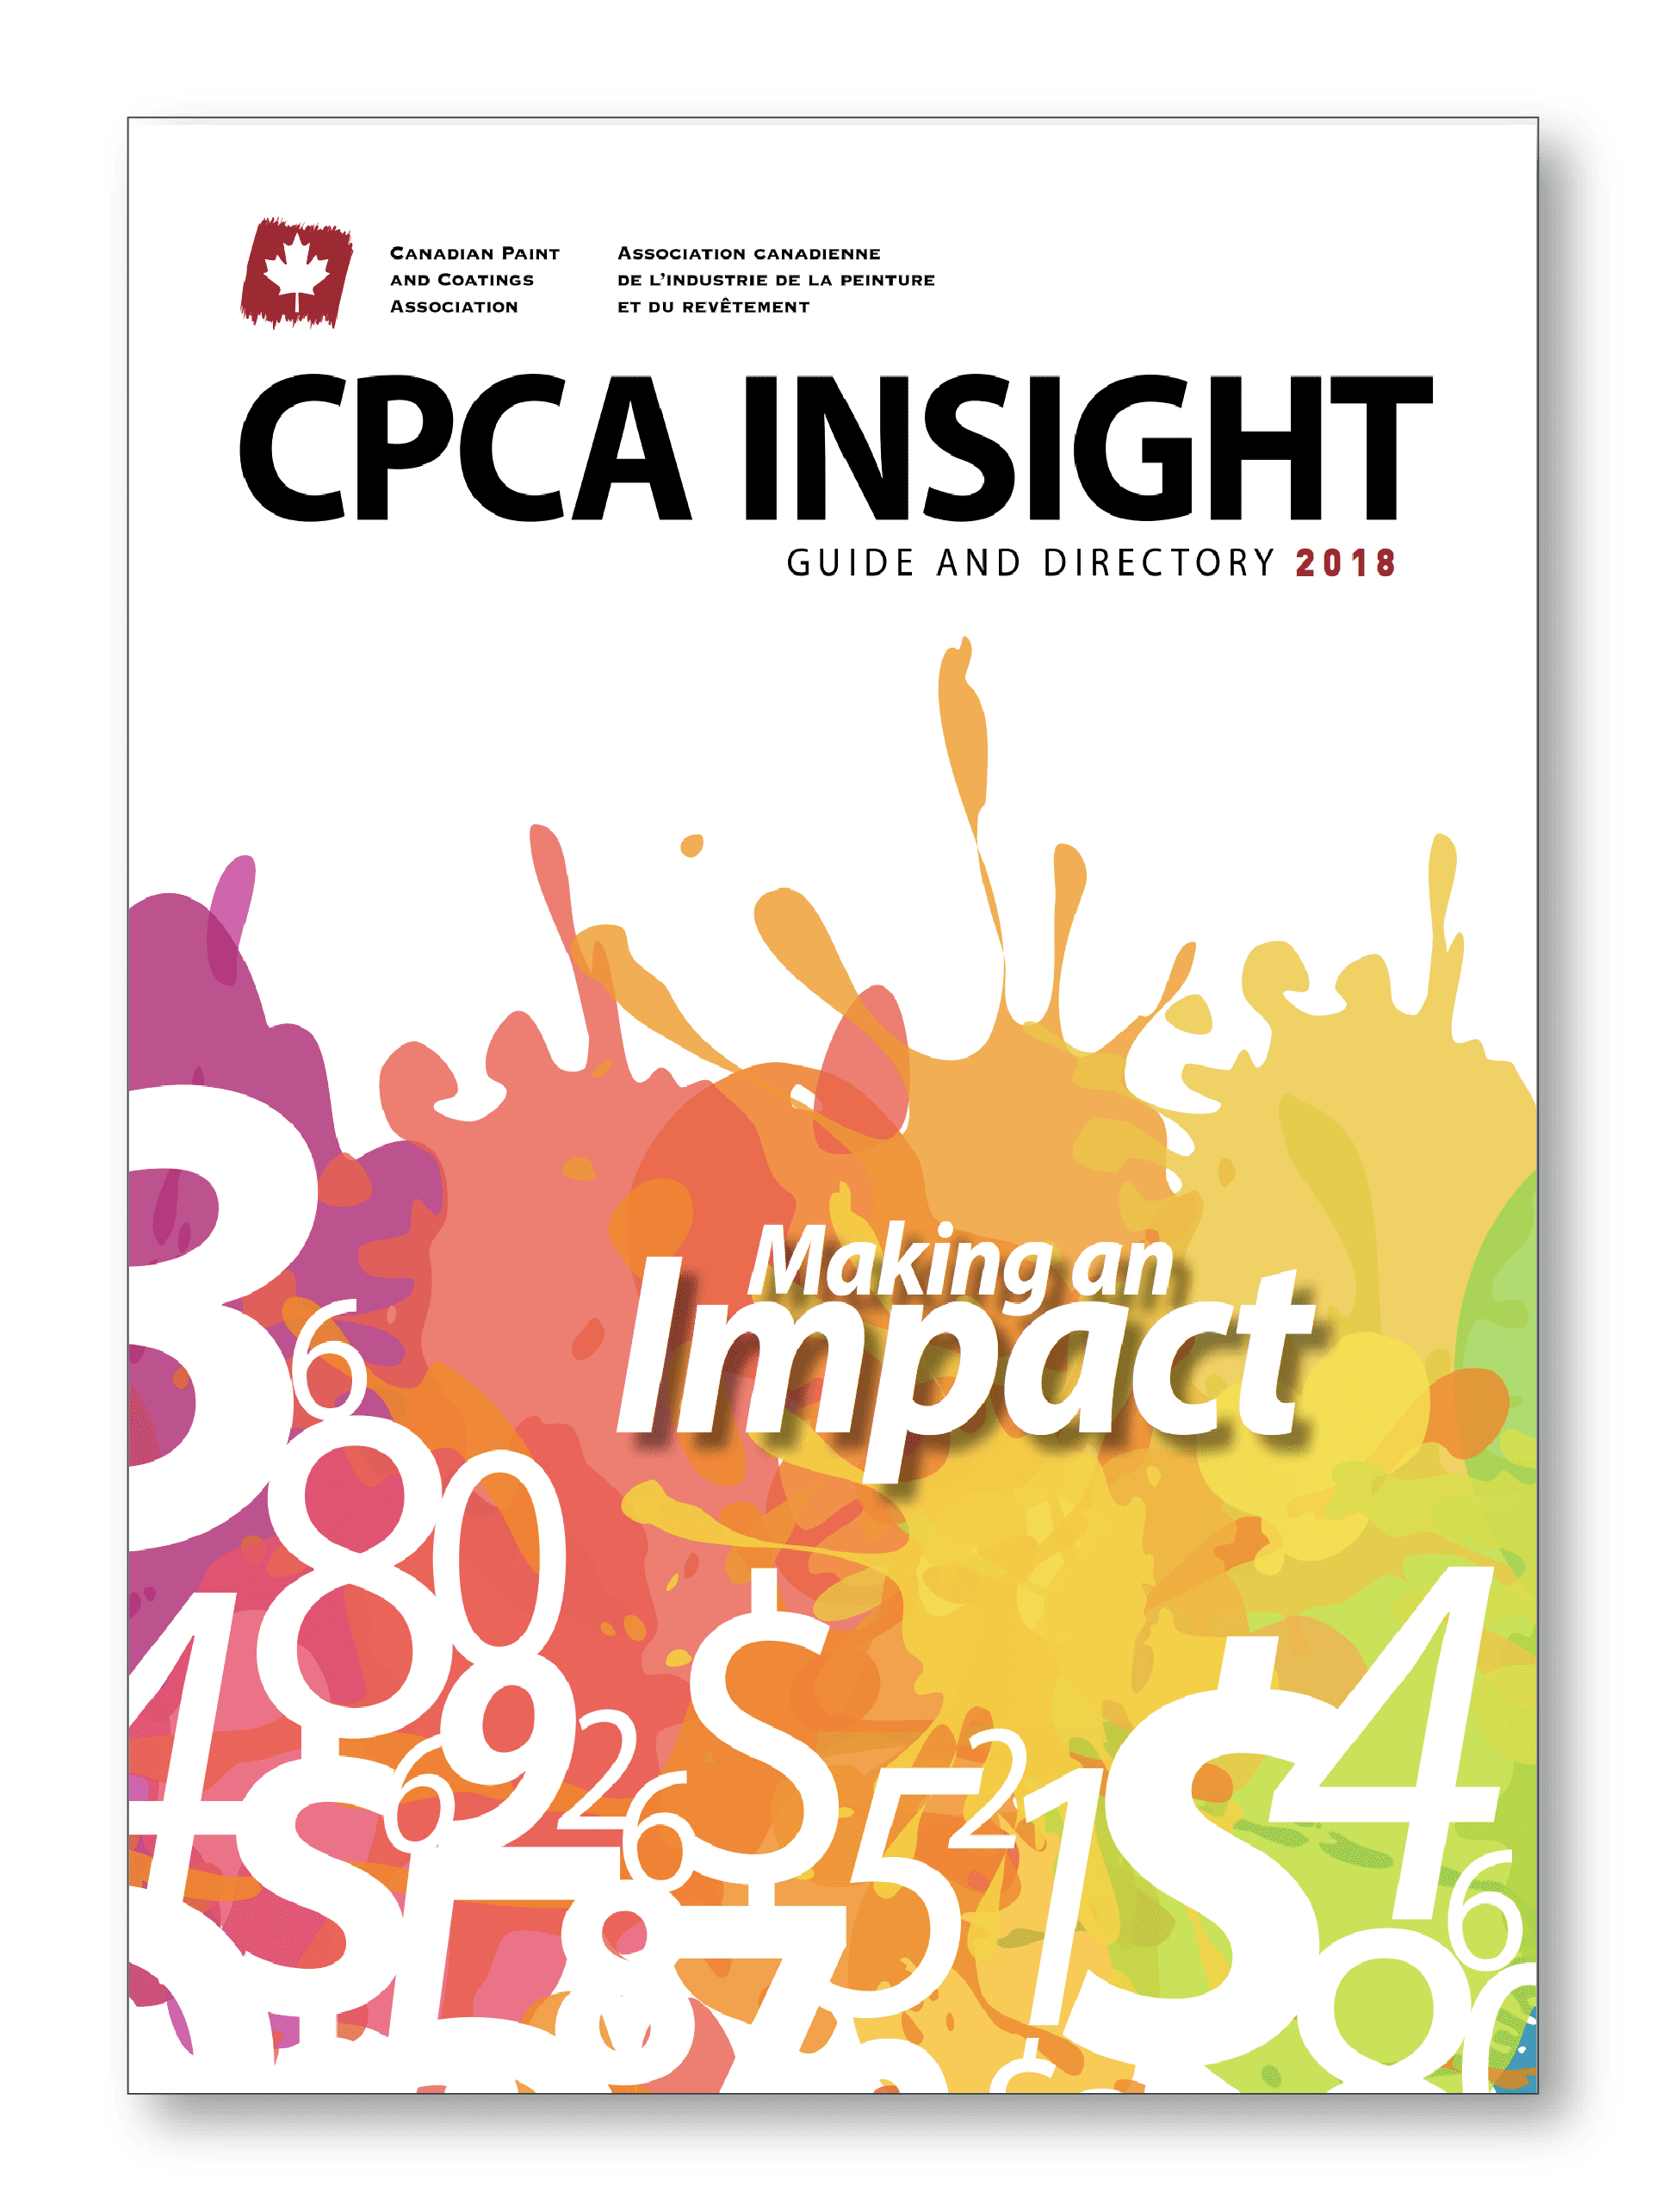 CPCA News and Publications